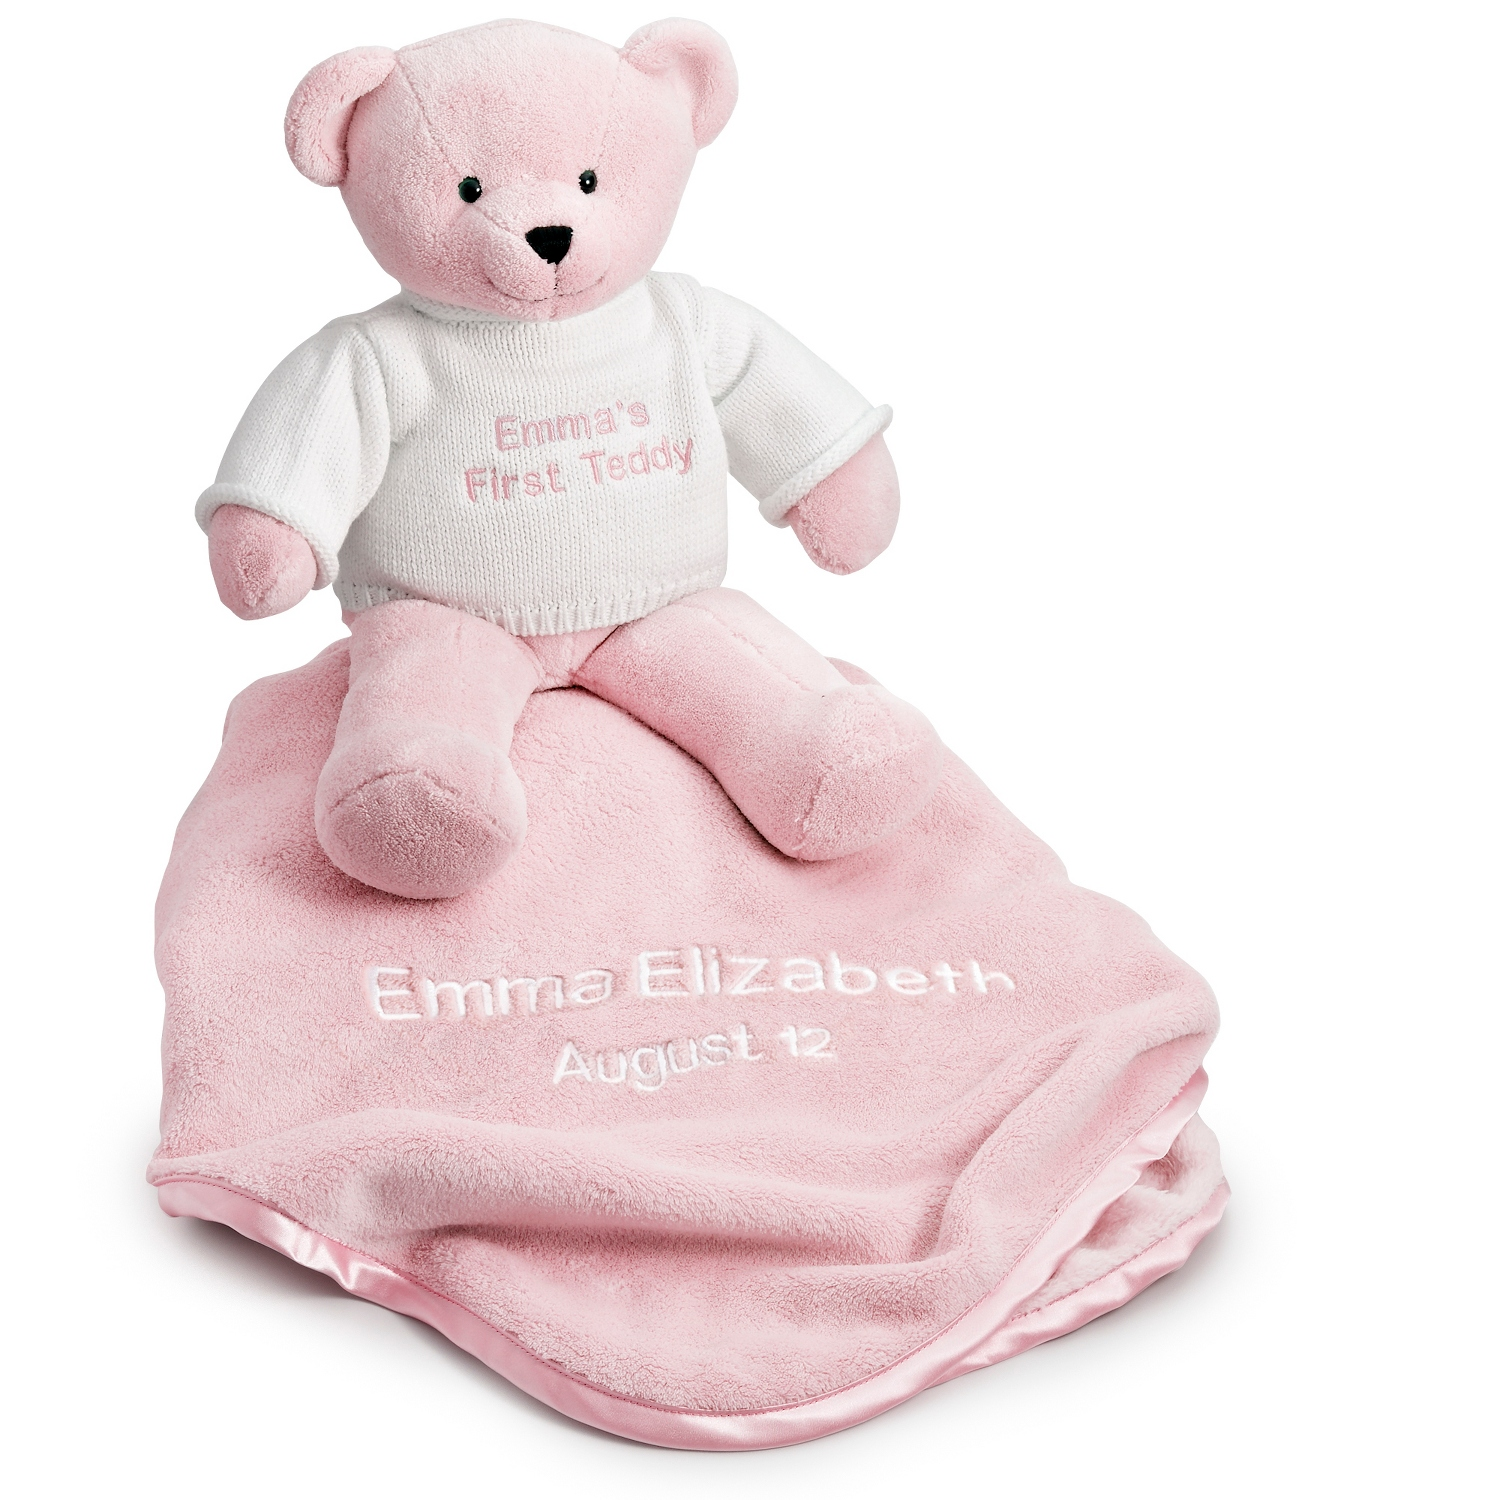 Personalized gifts for babies at things remembered pink teddy bear with blanket negle Gallery